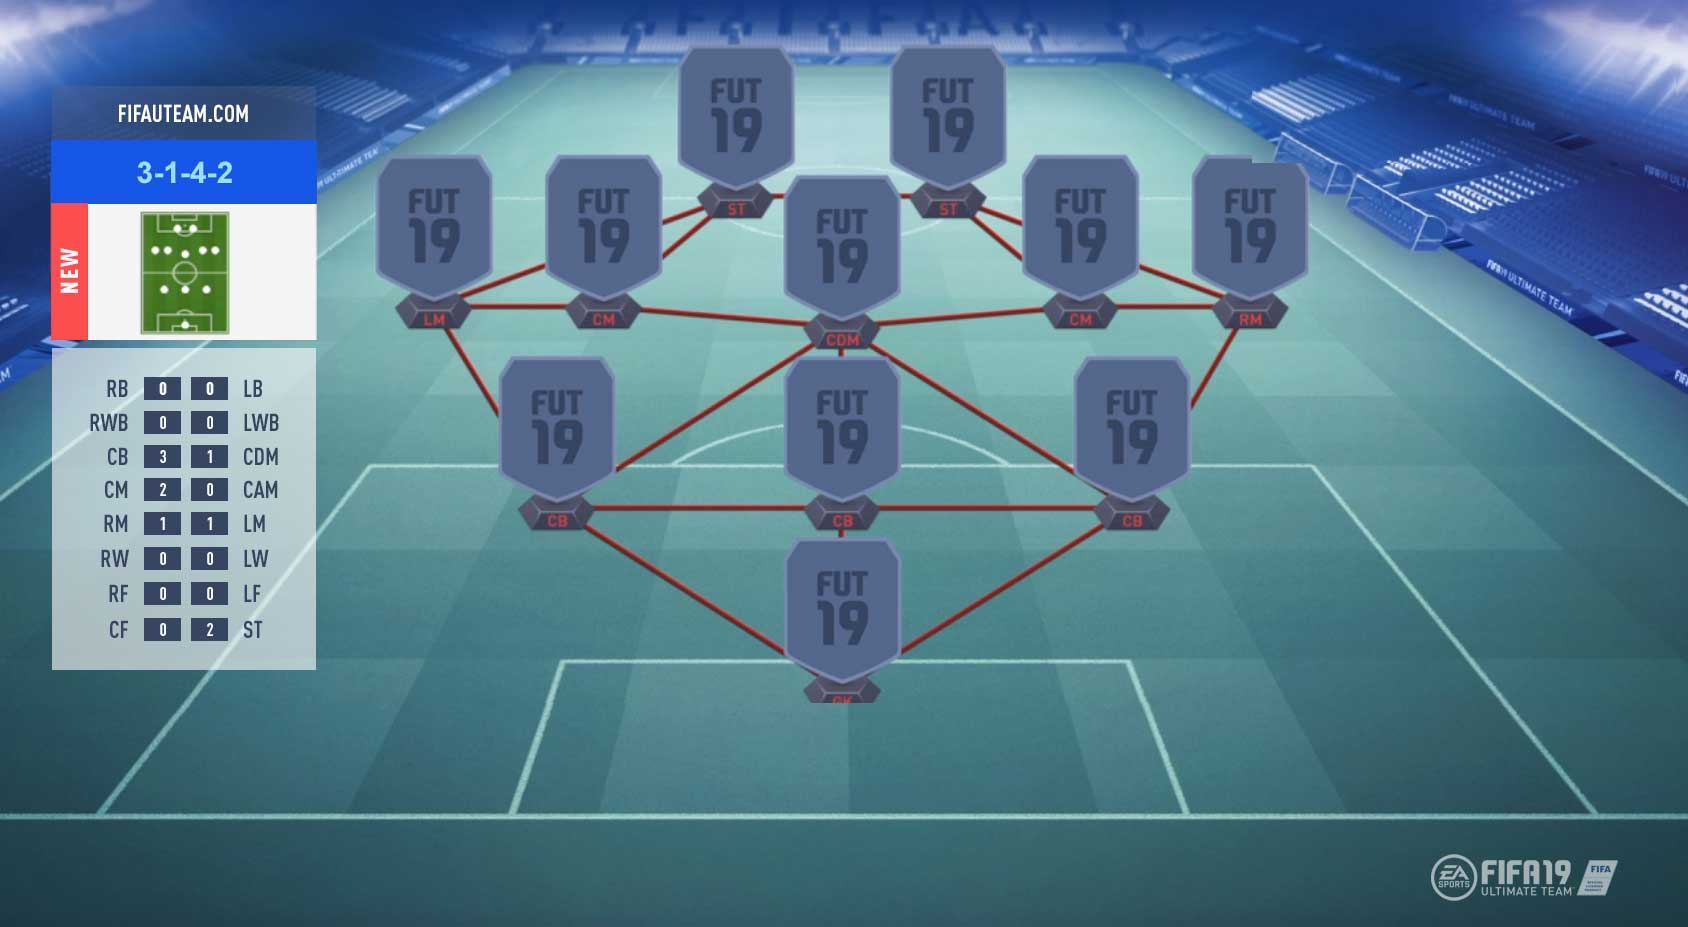 FIFA 19 Formations Guide - 3-1-4-2